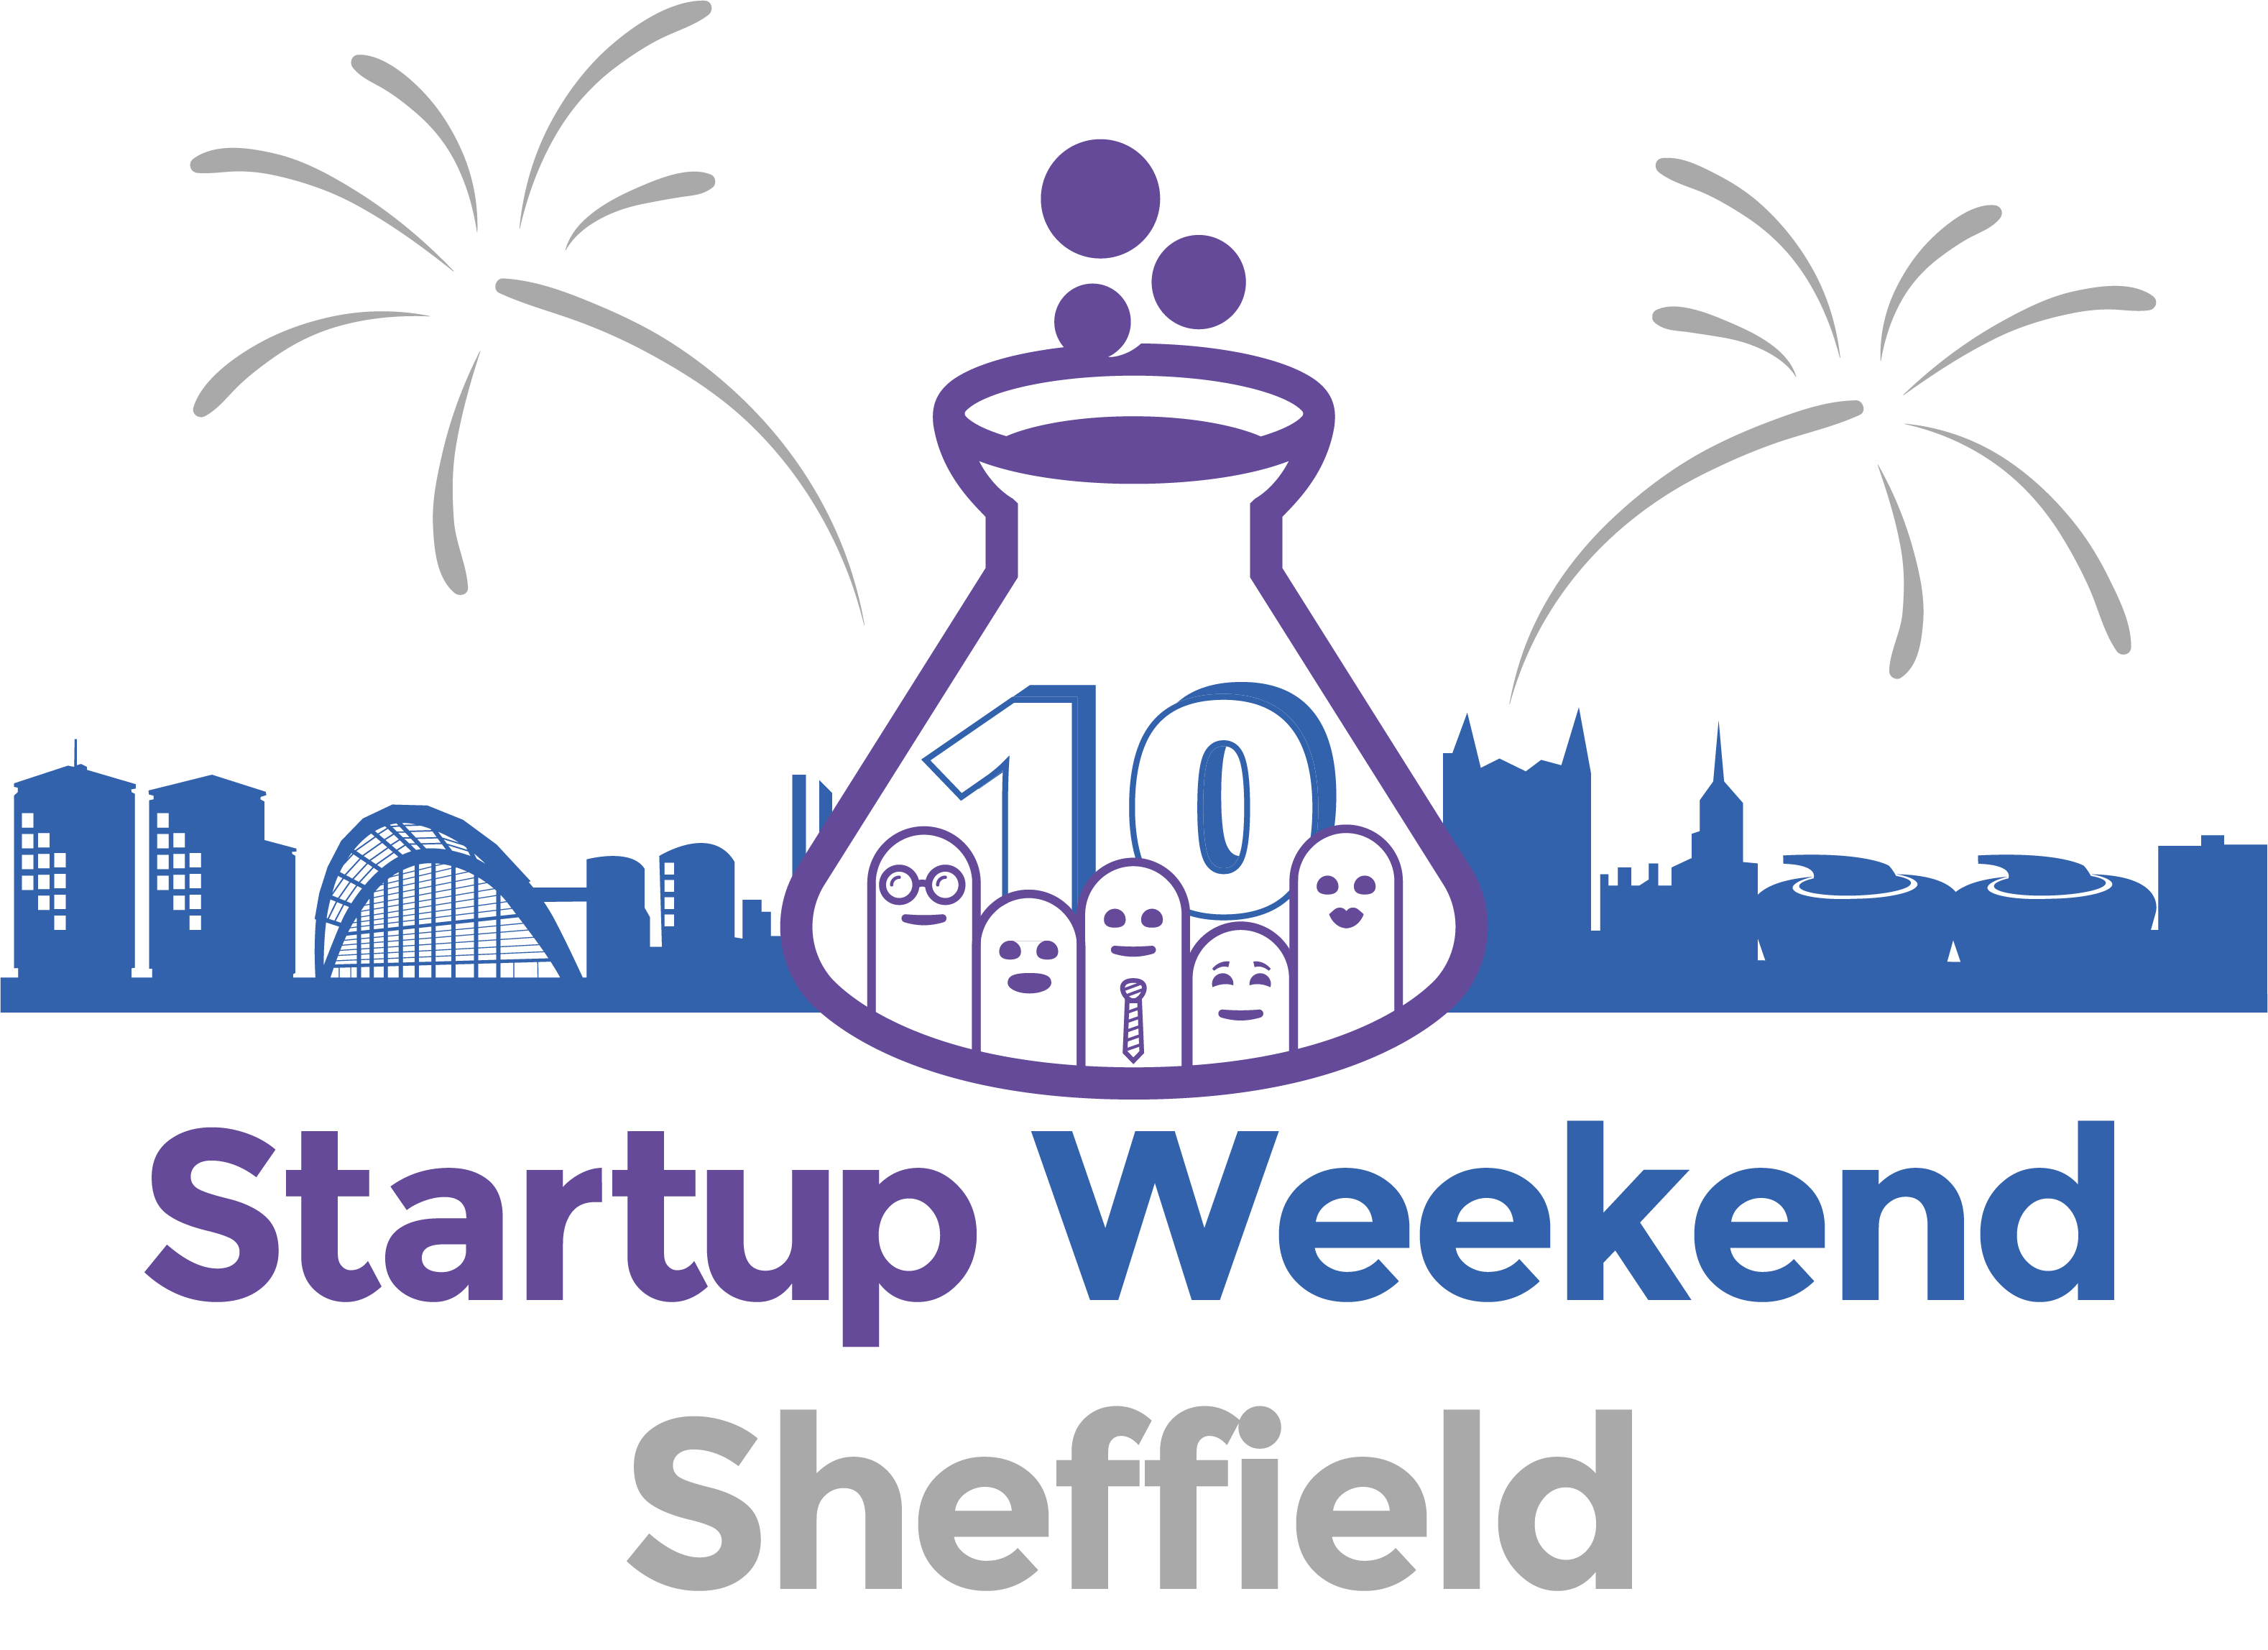 8 Weekend jobs in Sheffield on Careerstructure. Get instant job matches for companies hiring now for Weekend jobs in Sheffield like Mechanical and Electrical, Sales Advising, Call Centre and more.